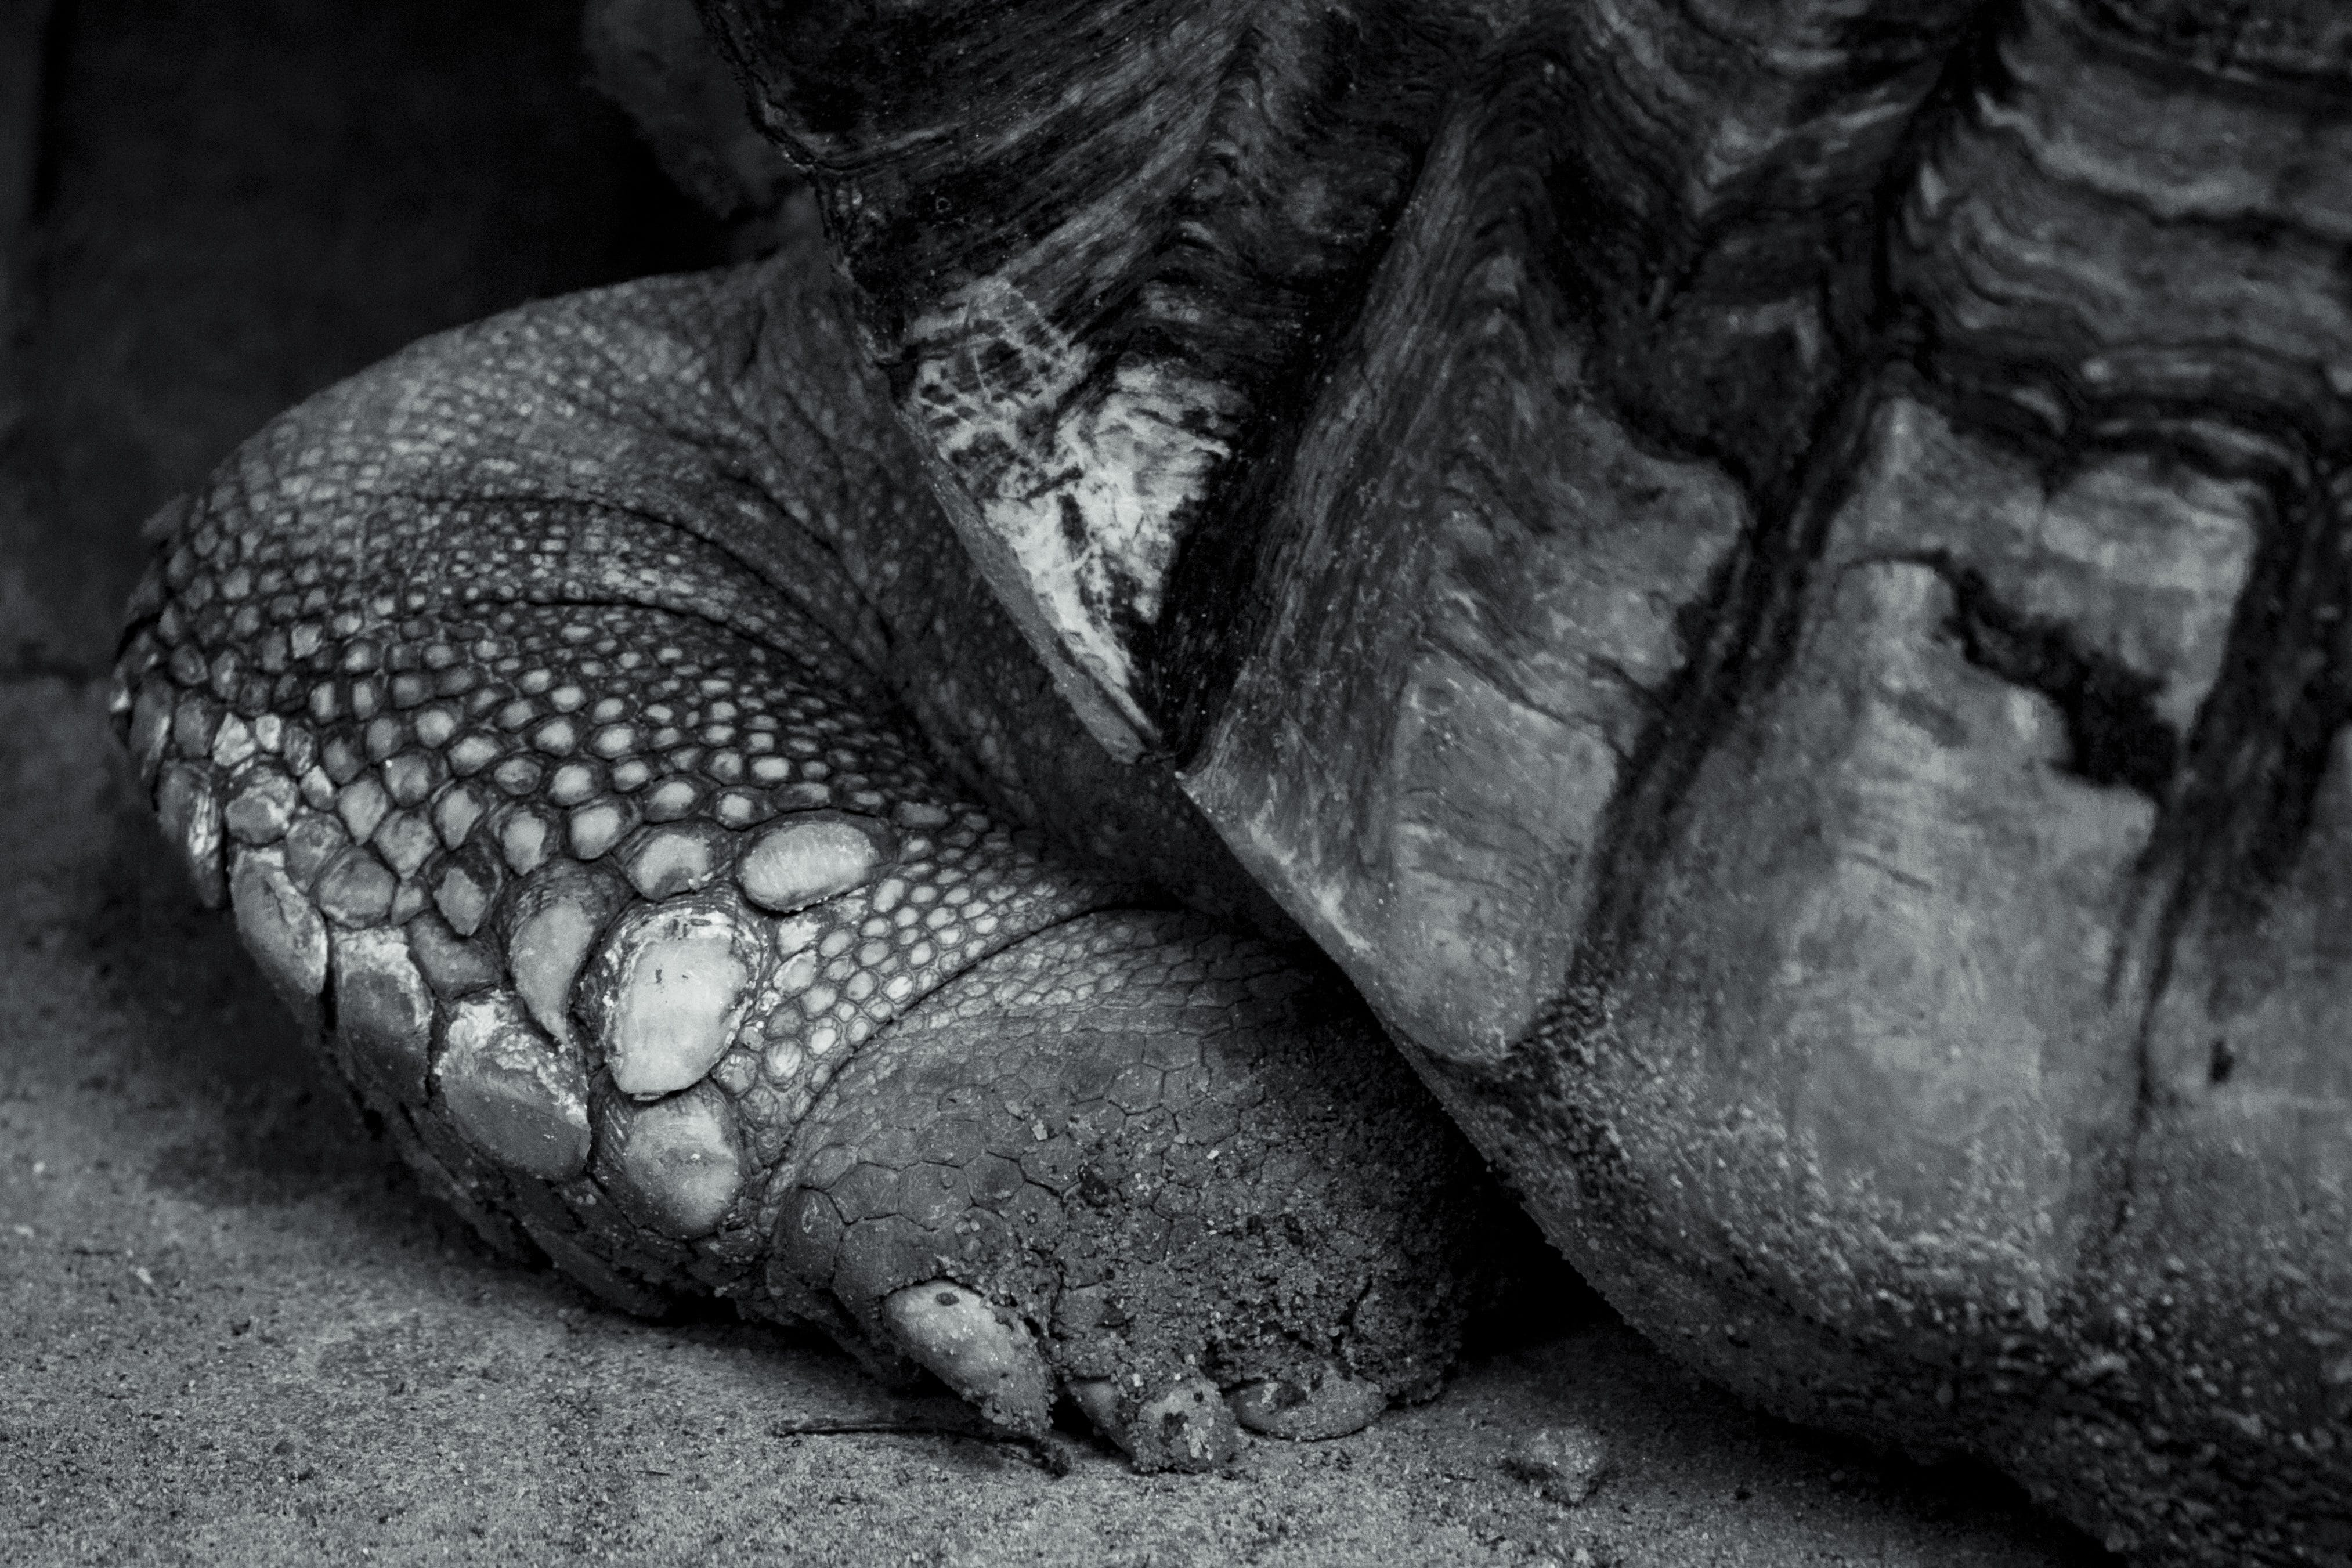 Free stock photo of animal, black and white, close-up view, feet